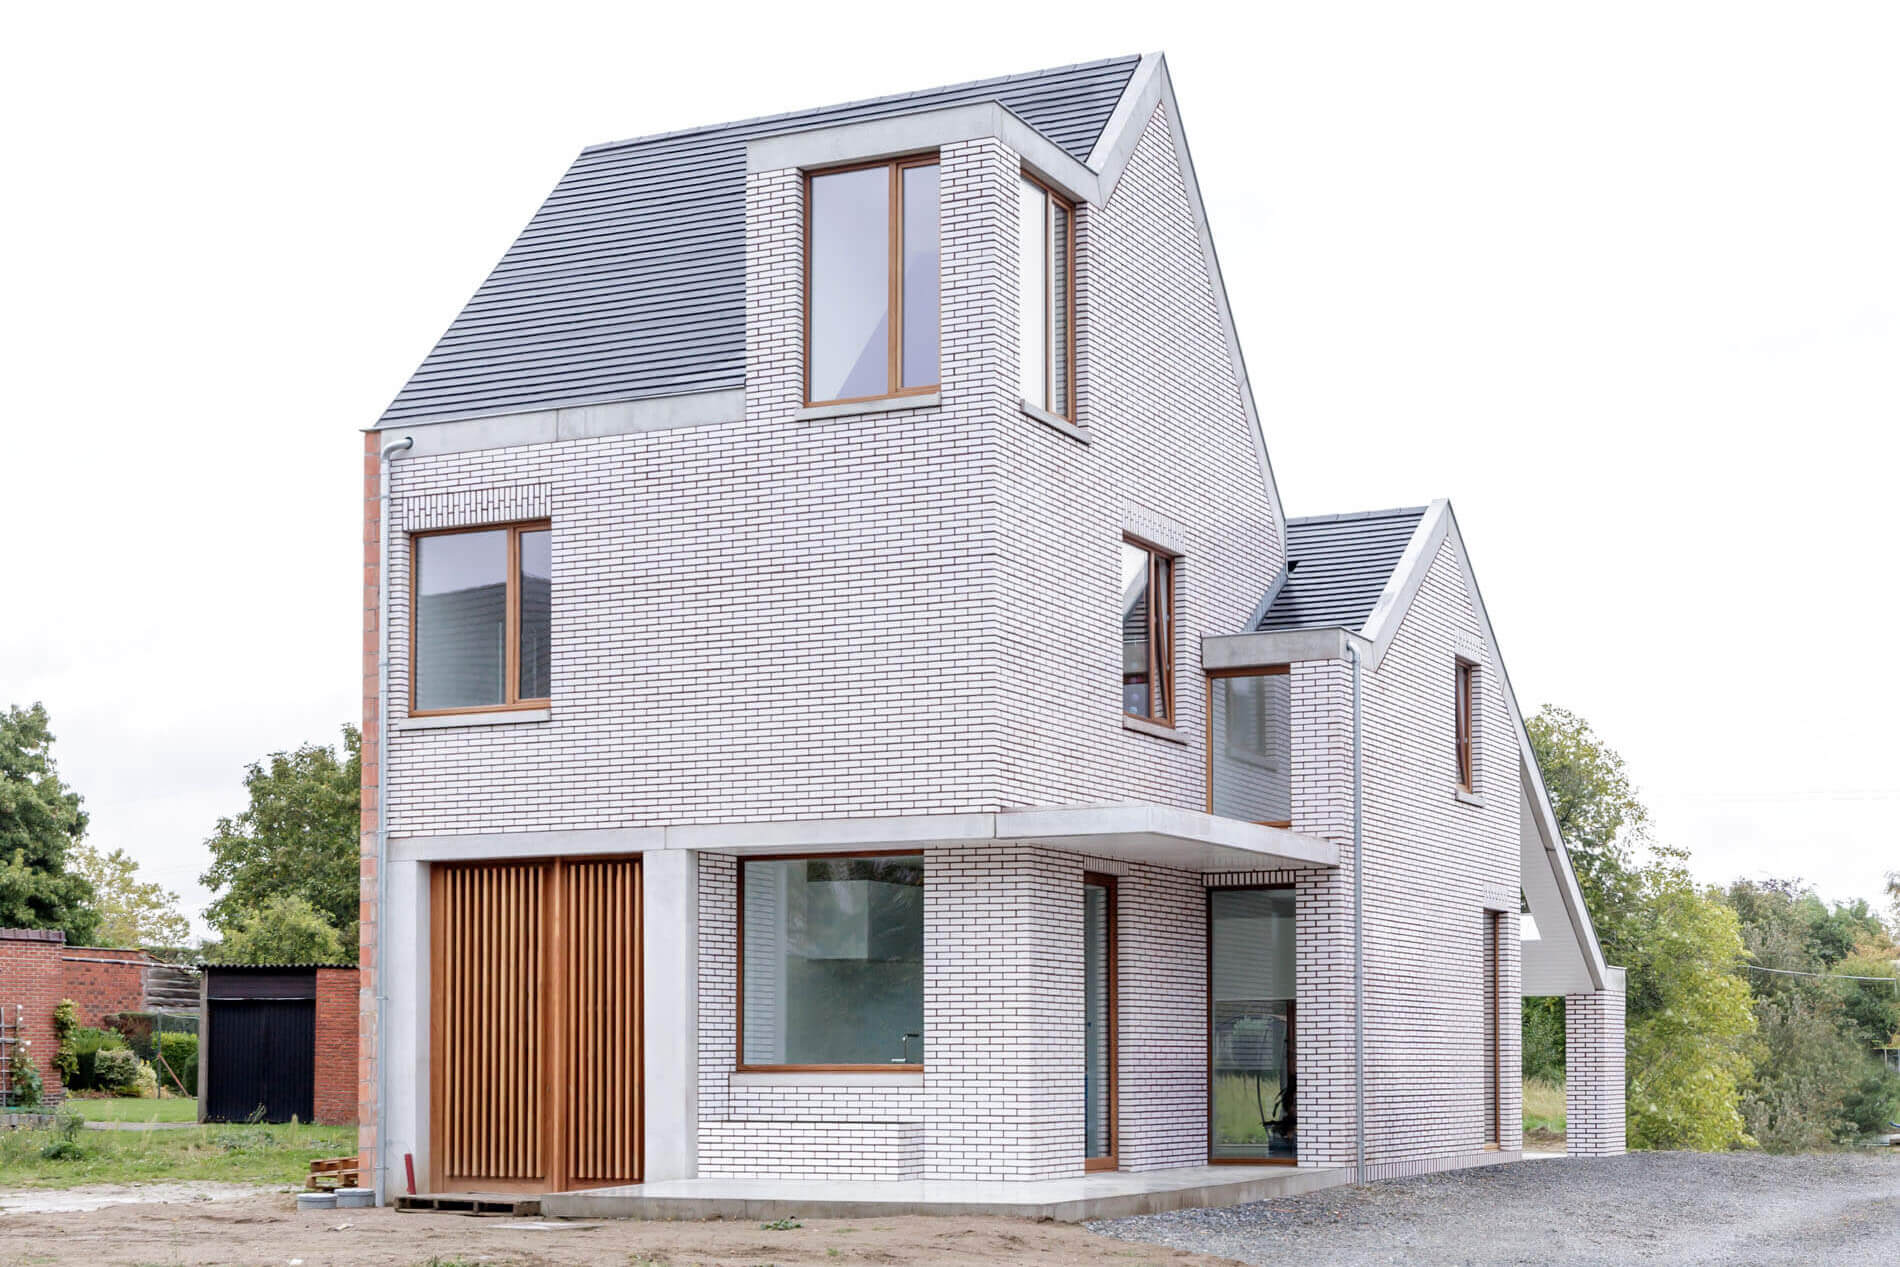 Vinken House by Poot architectuur